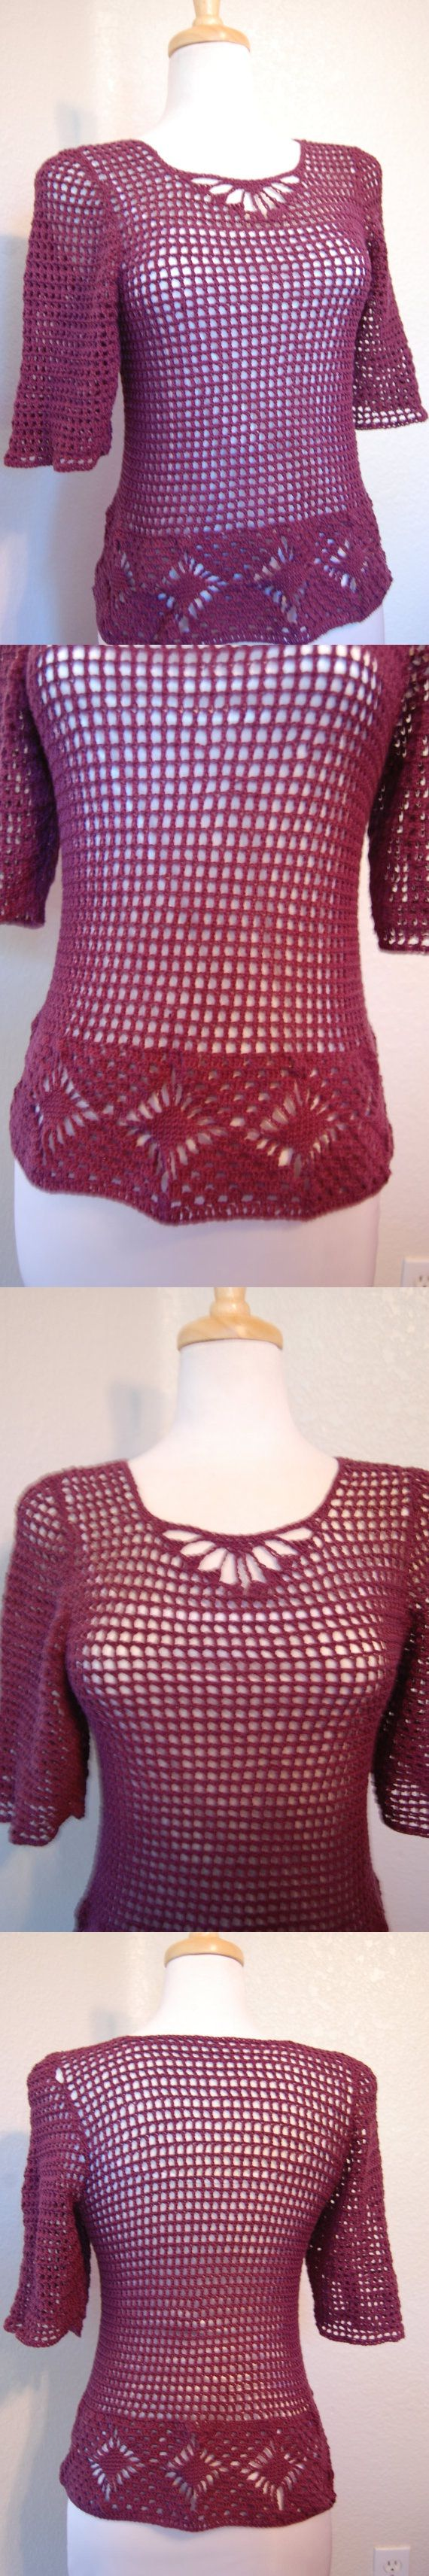 Crochet Top Mesh Aubergine Cotton size Small by LoyesThread